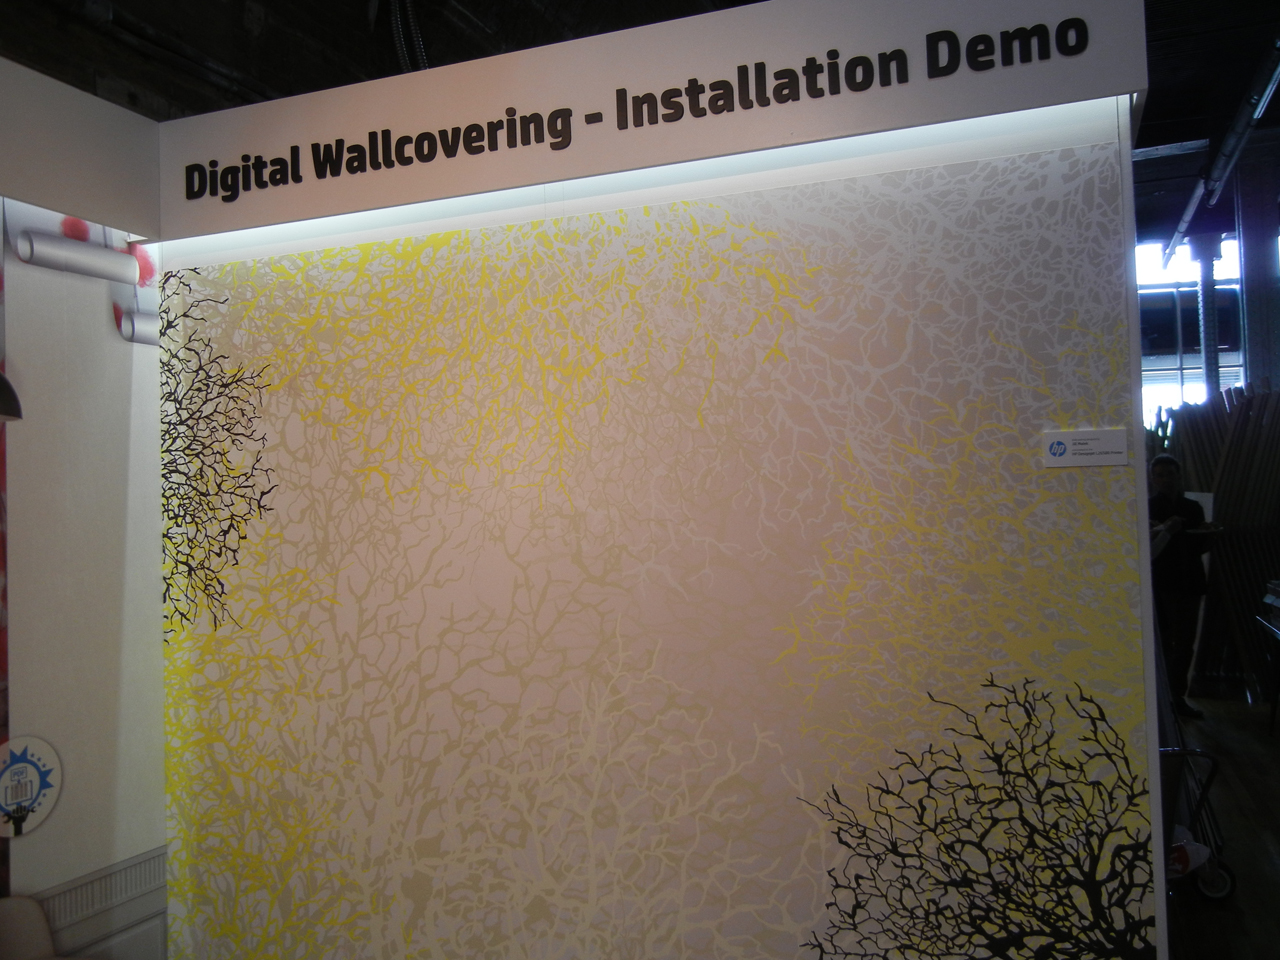 HP-Custom-Wallcoverings-7-Jill-Malek's-wallcovering-installed